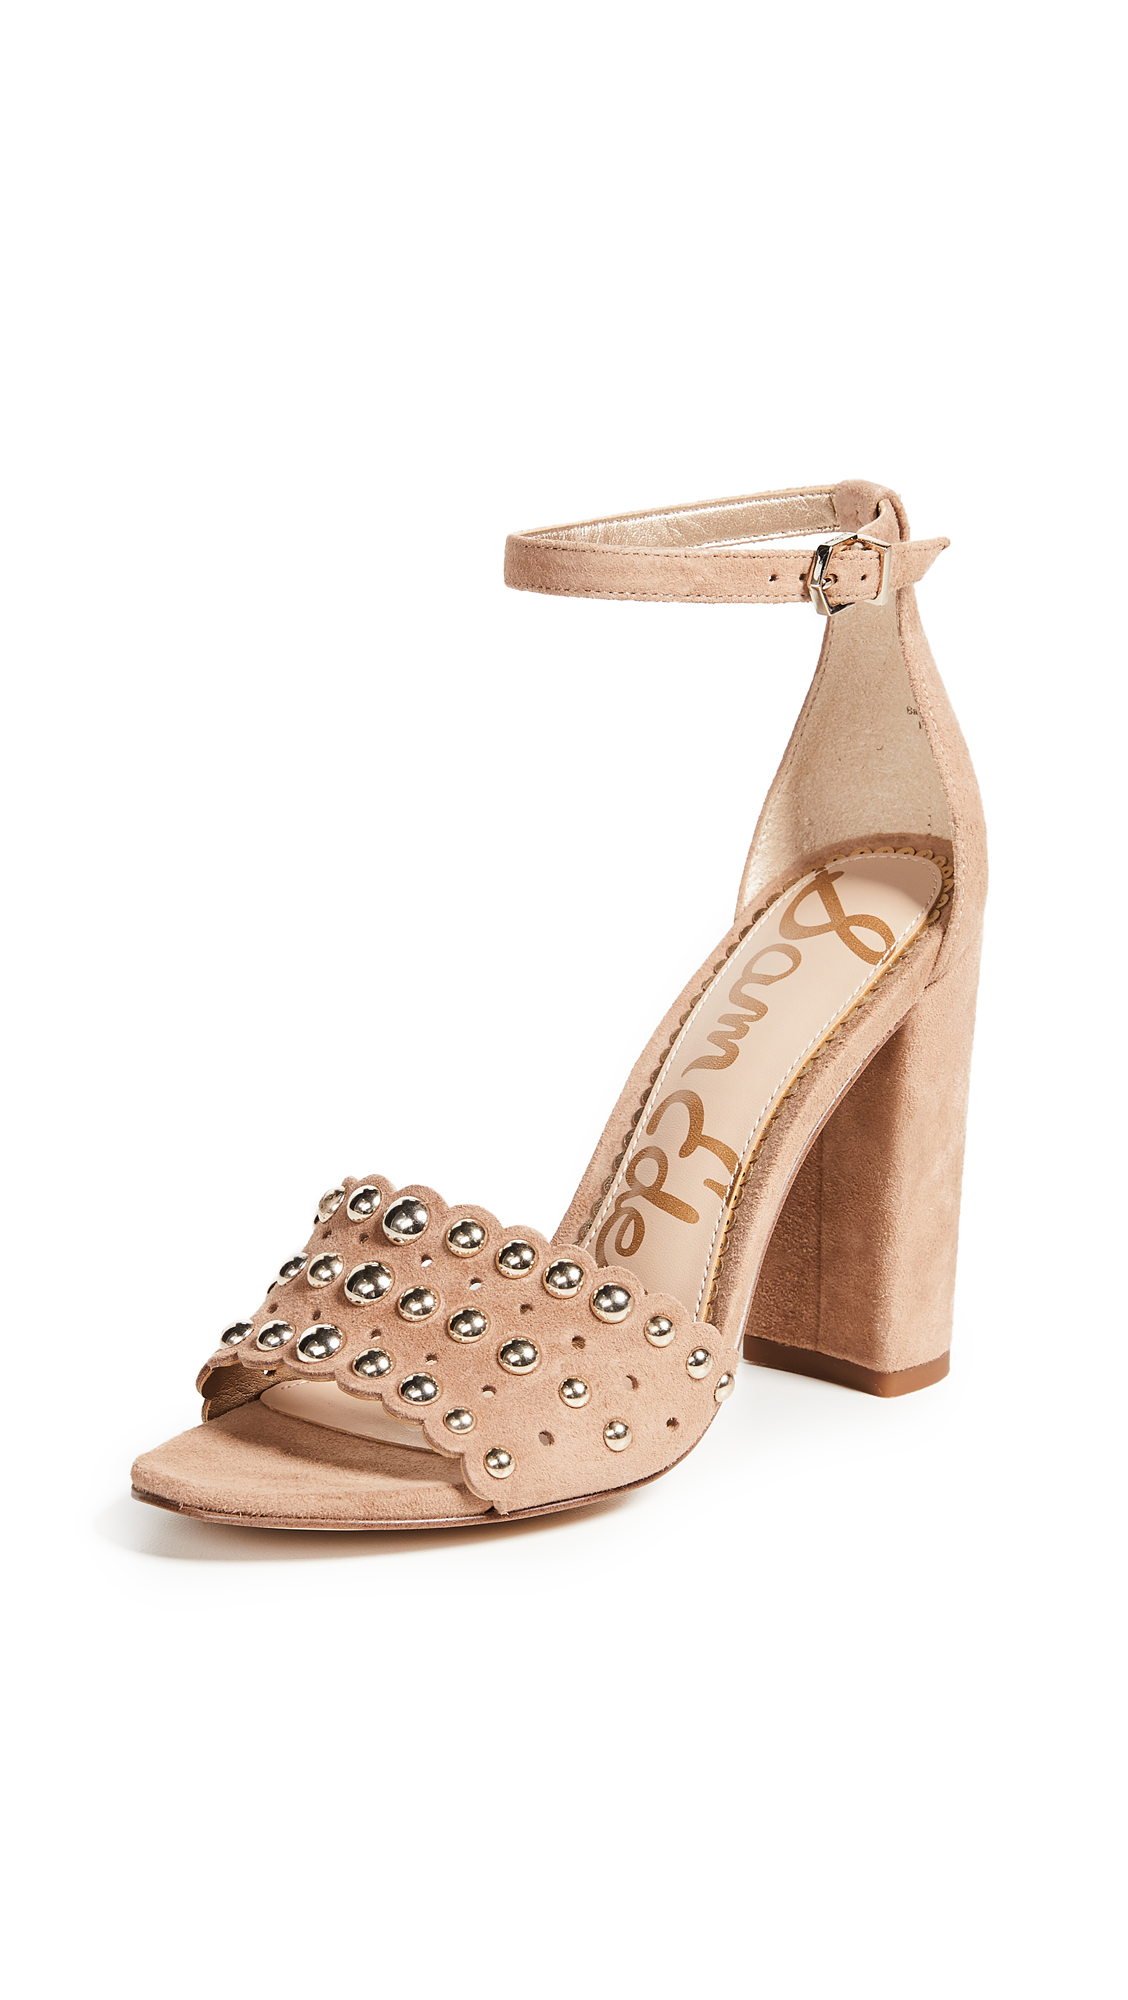 Sam Edelman Yaria Sandals - Golden Caramel